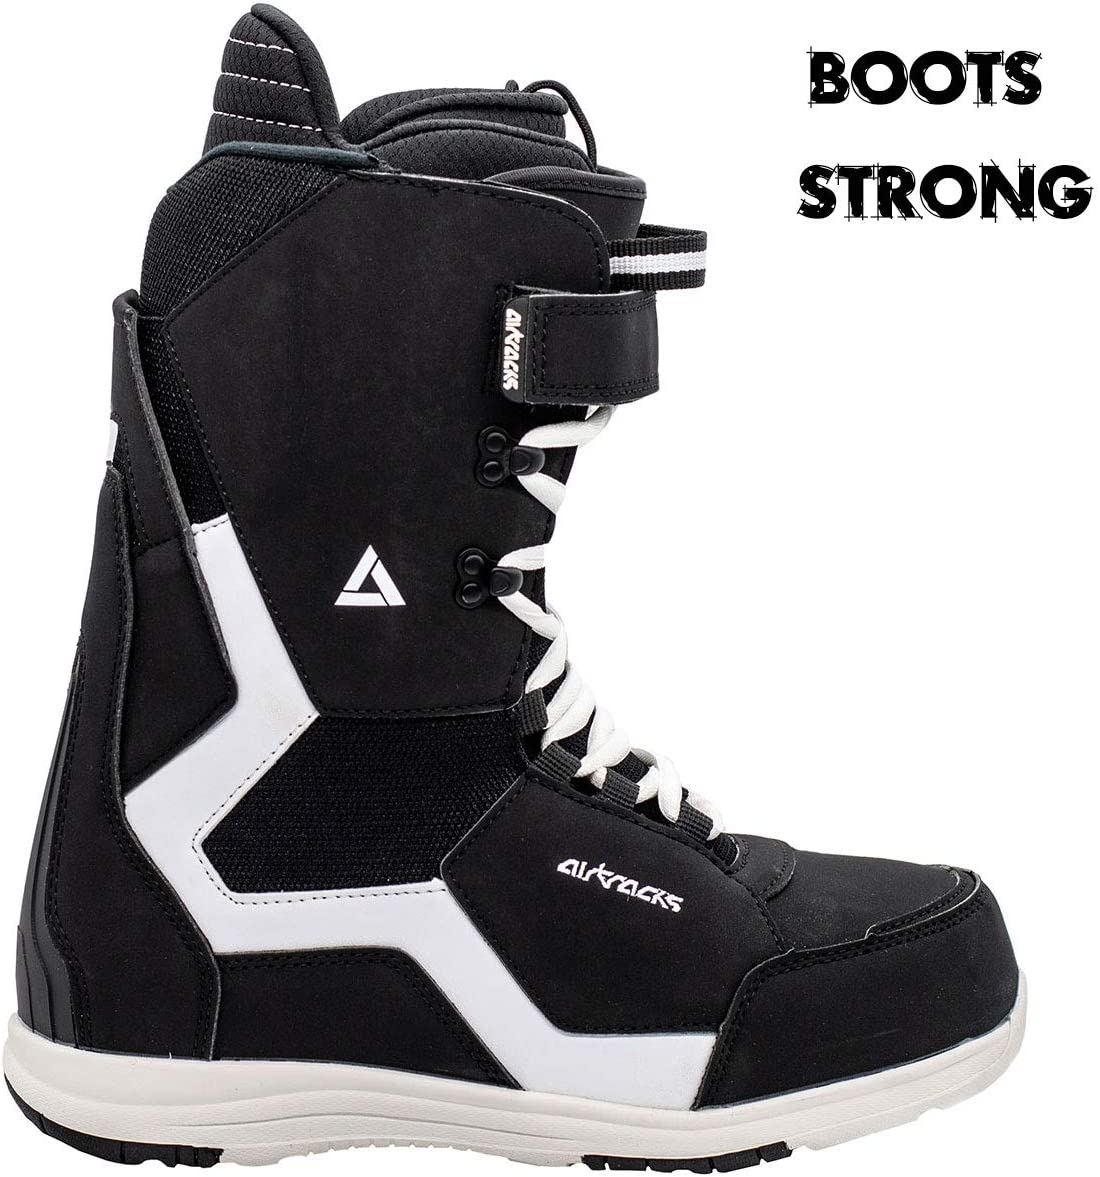 Chaussures AIRTRACKS Snowboard Set//Pack//Planche Places Wide SB Sac // 152 156 159 162 cm Fixations Master